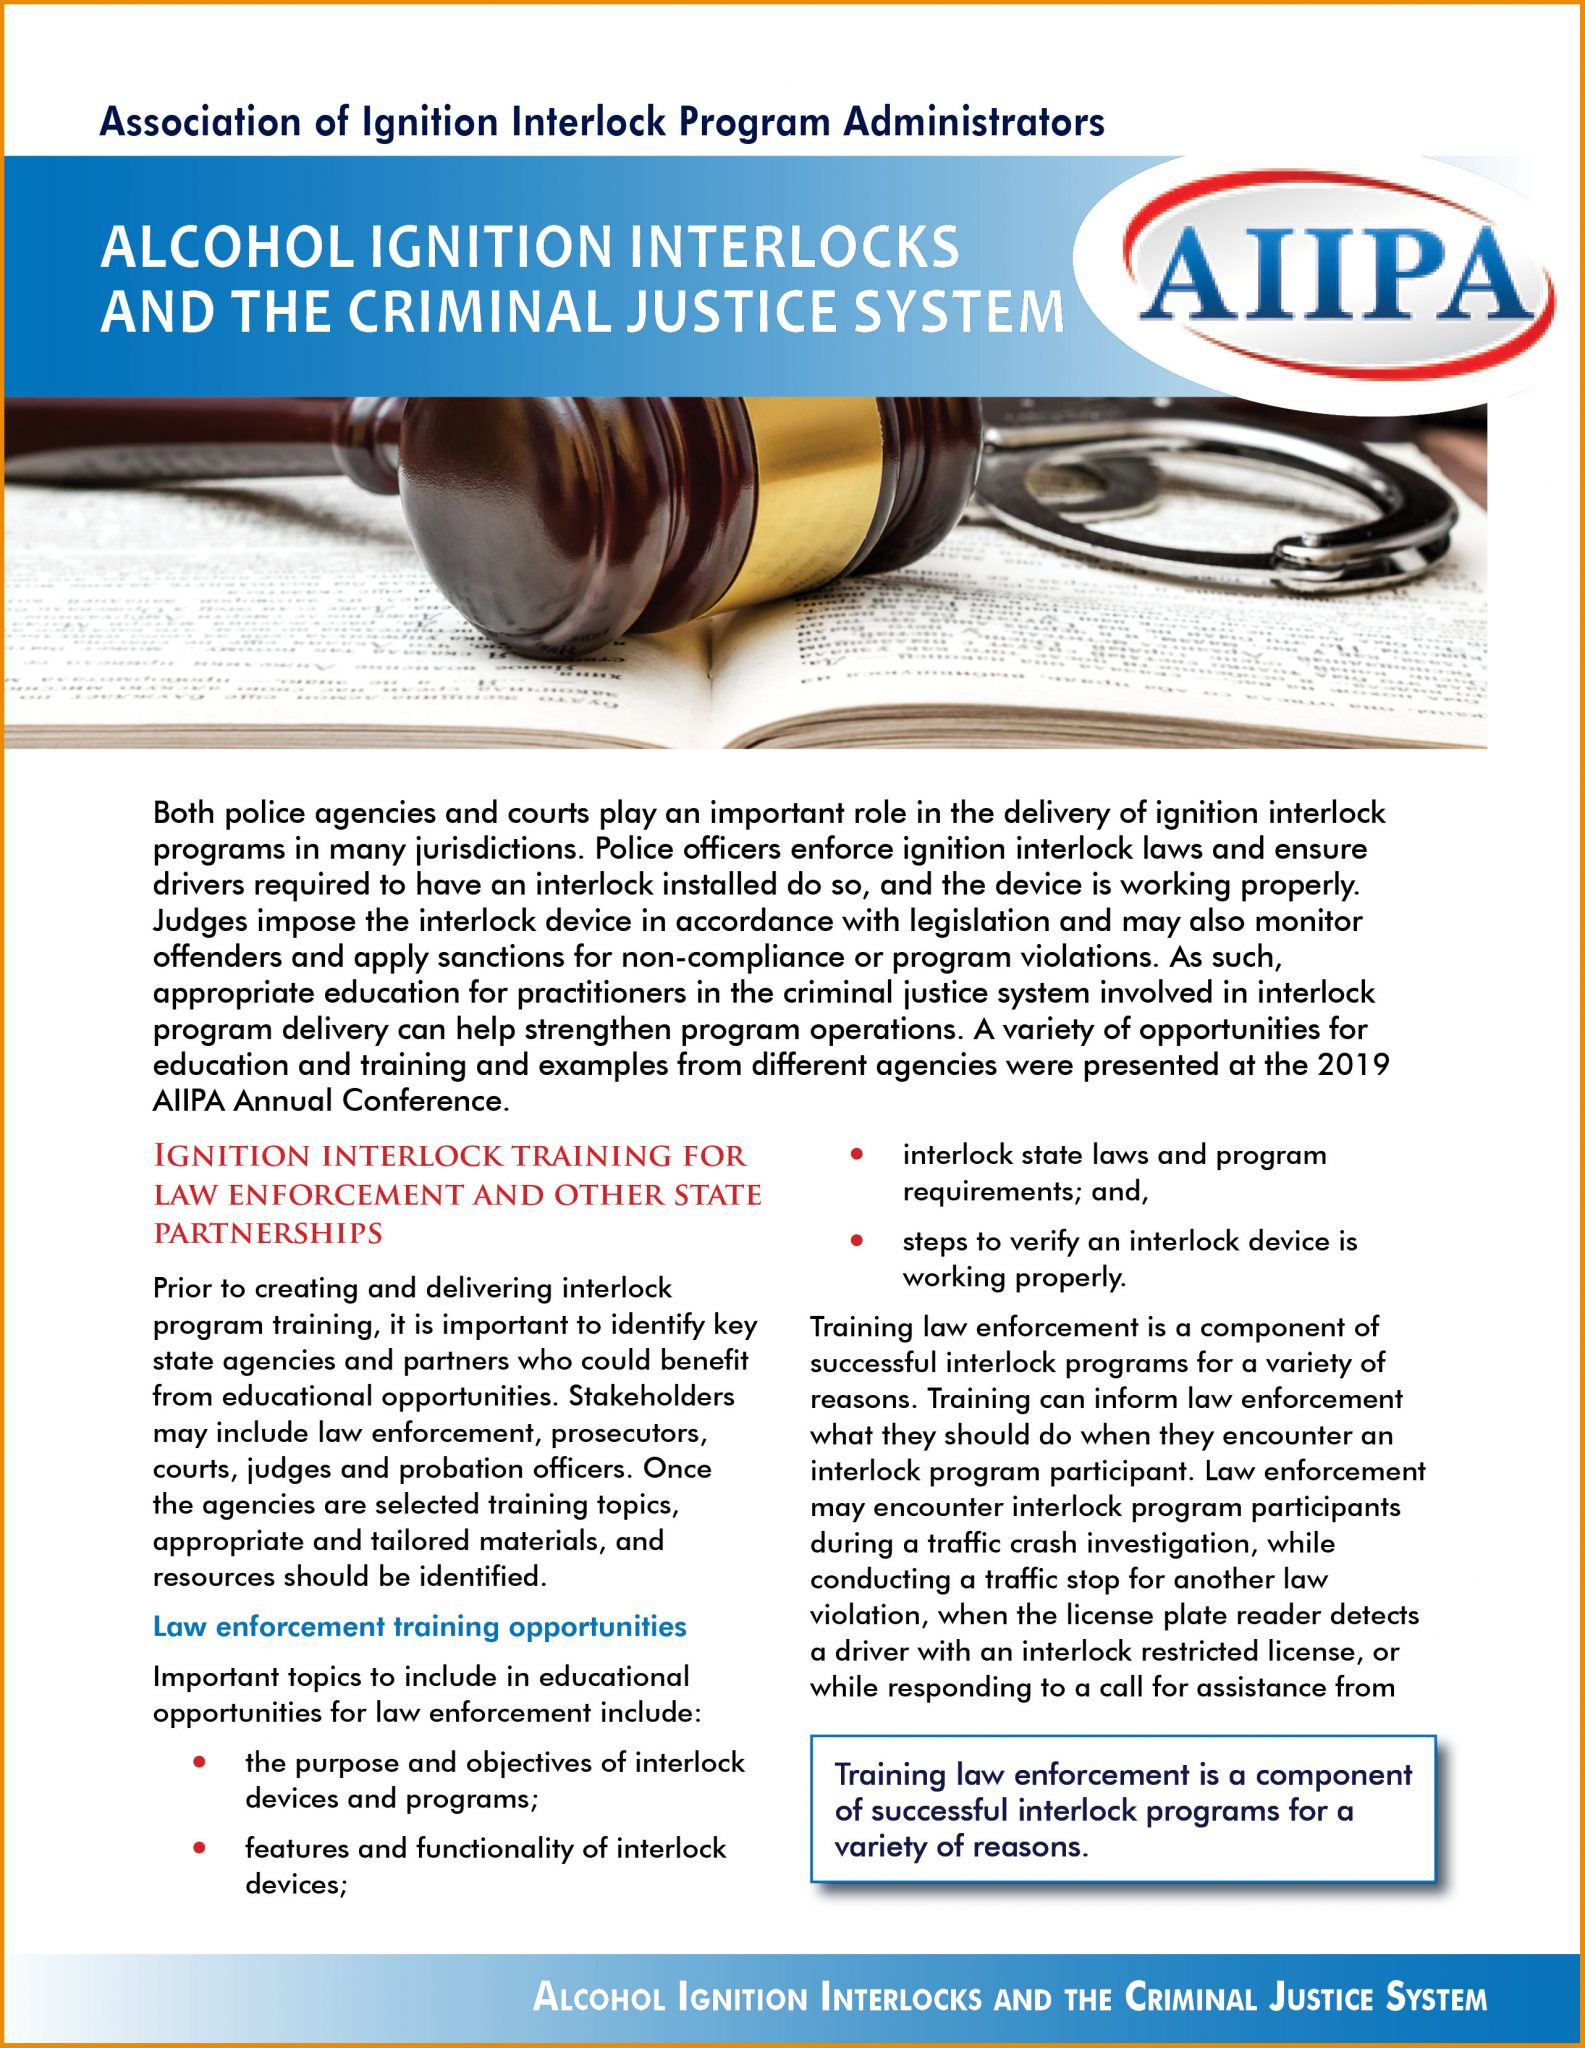 Alcohol Ignition Interlocks and the Criminal Justice System